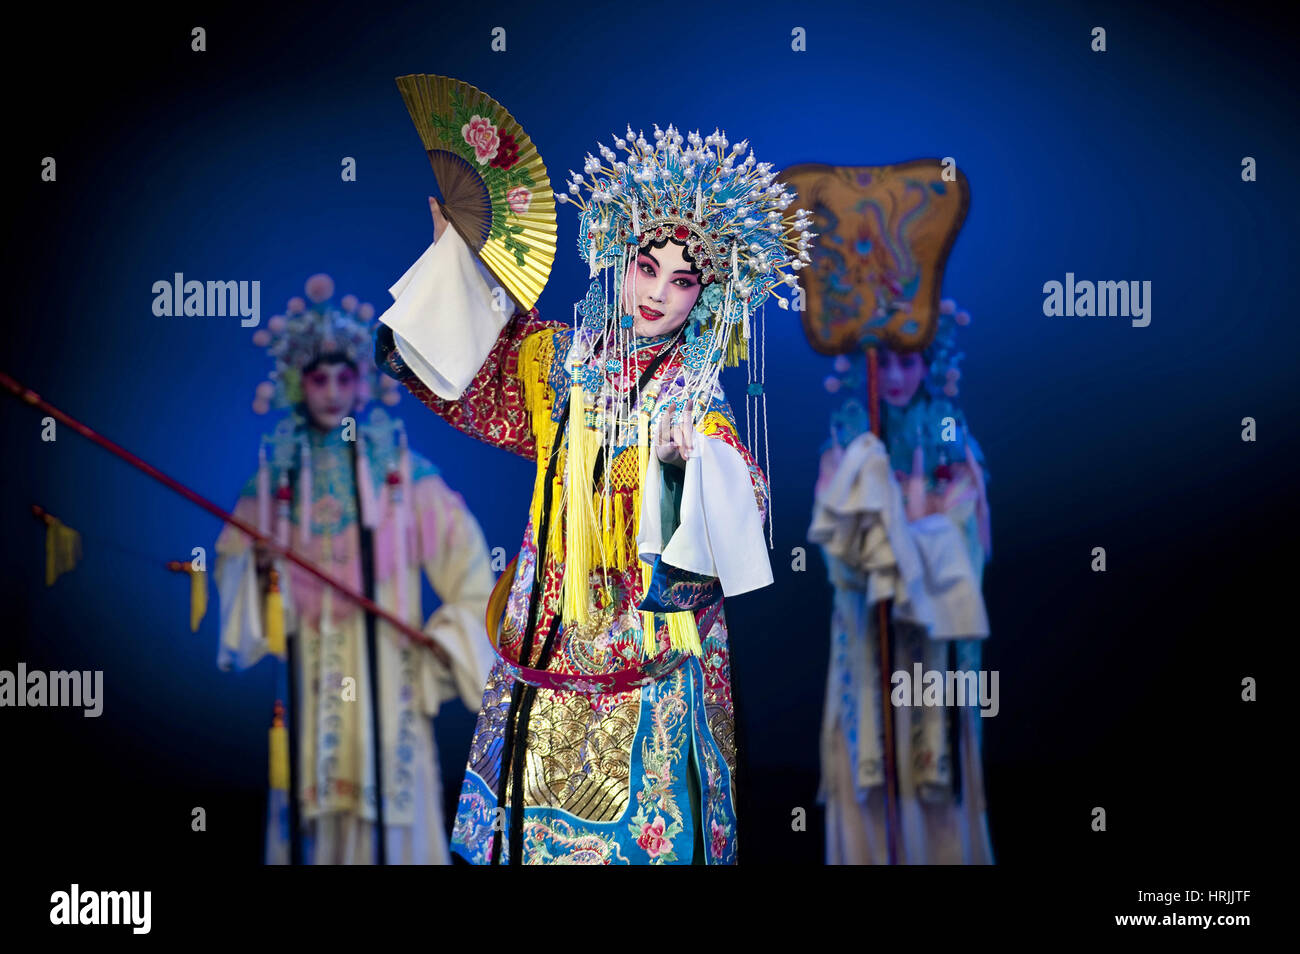 People's Liberation Army Performance Troupe, 2011 - Stock Image